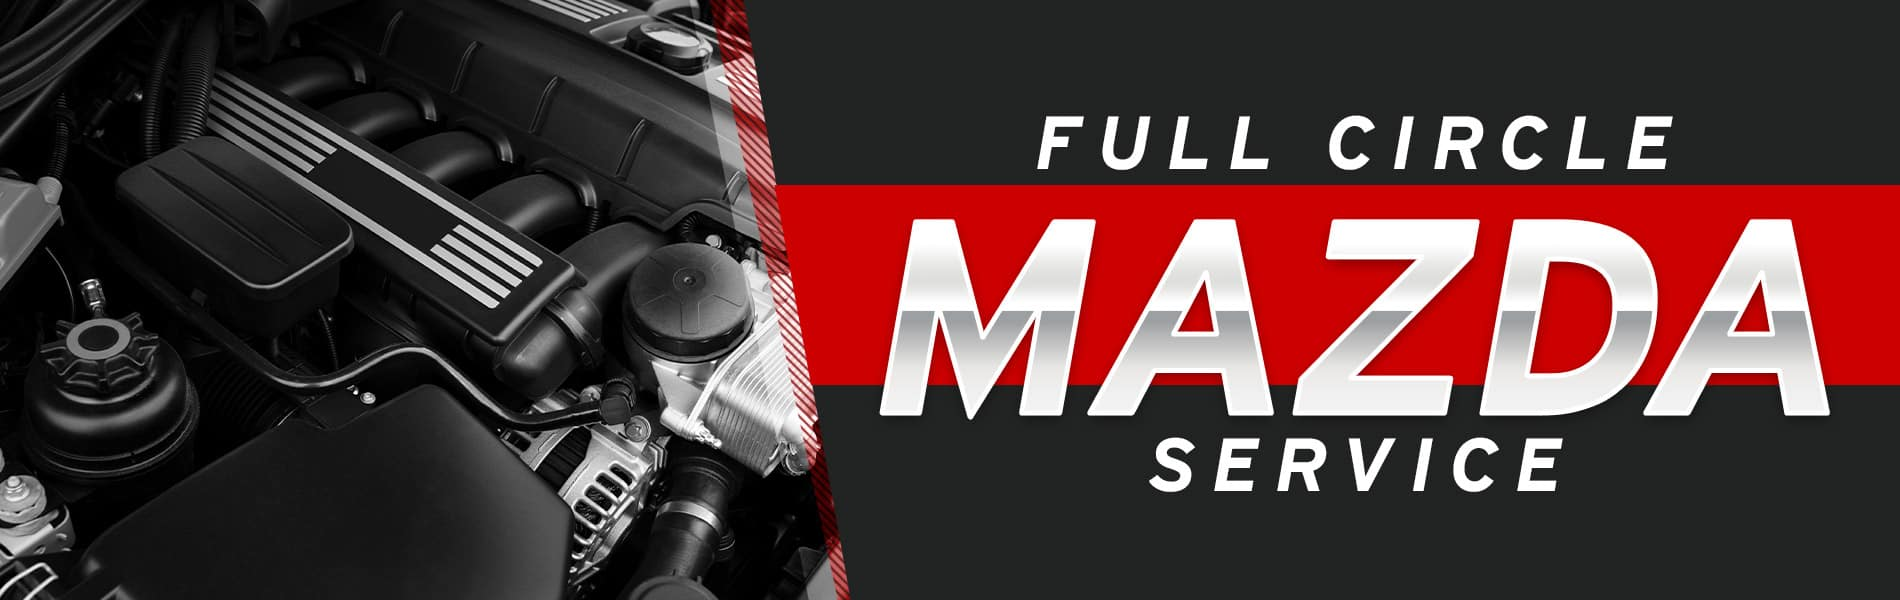 Mazda Full Circle Service | Cleveland, OH